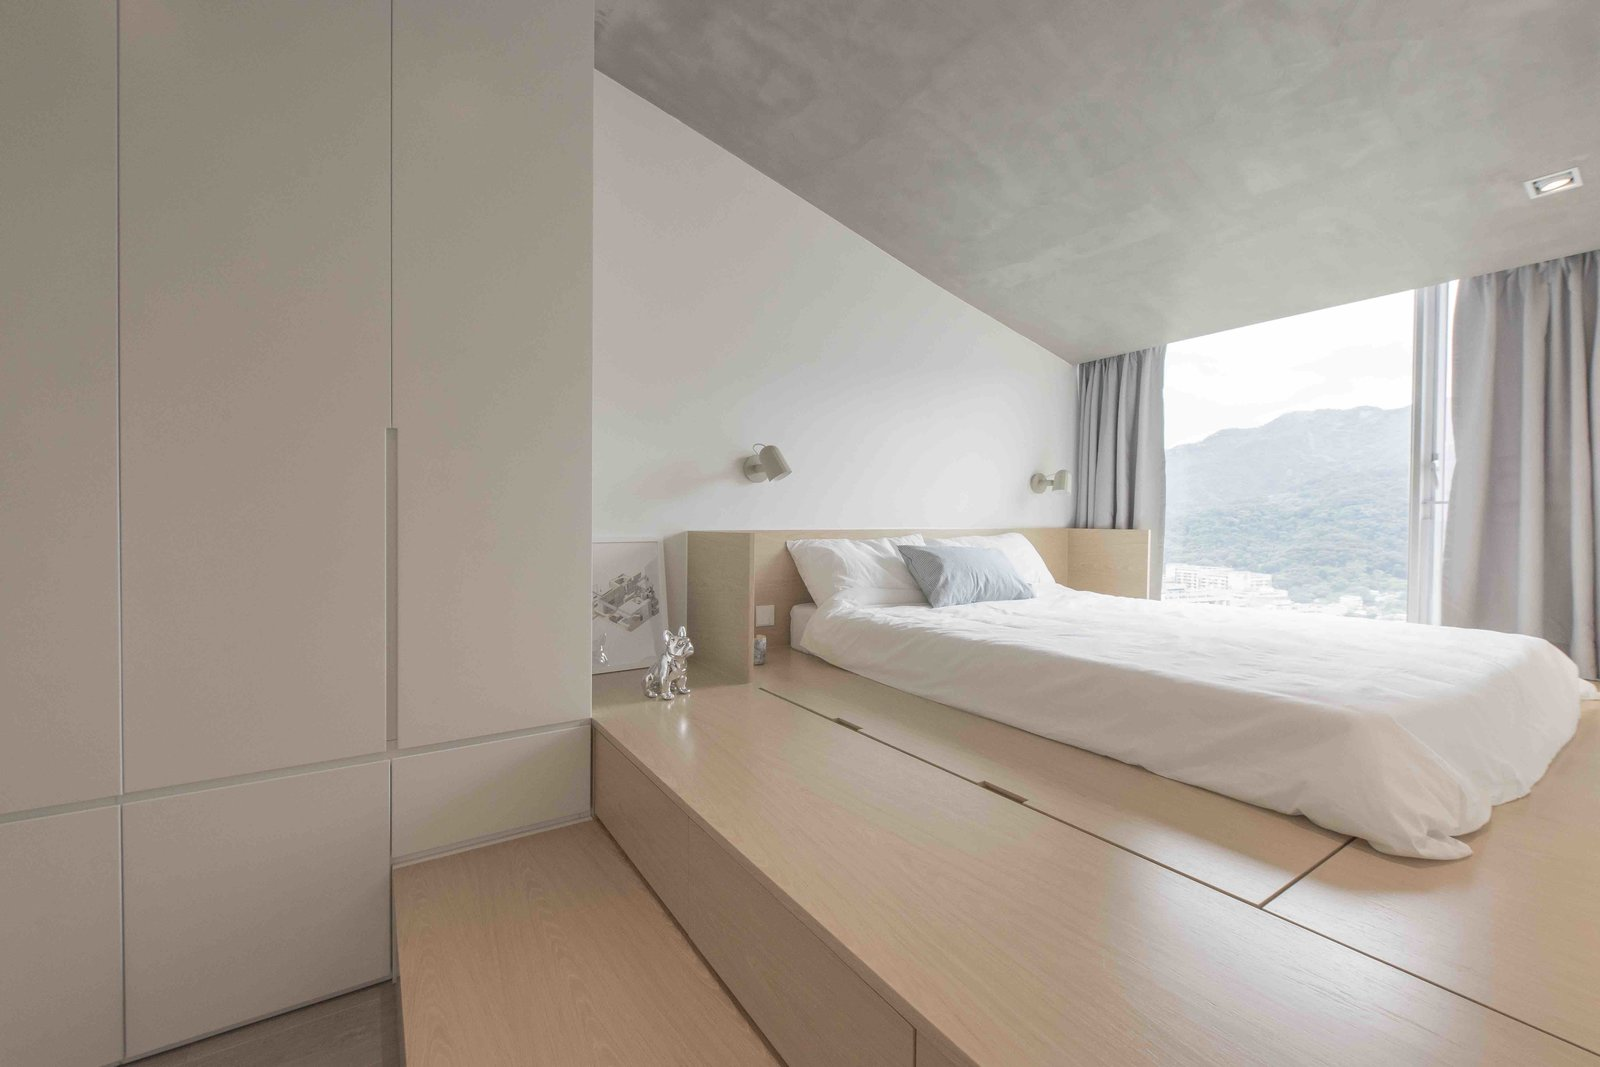 Bed, Storage, Recessed Lighting, Ceiling Lighting, Wall Lighting, Light Hardwood Floor, Storage Room, Closet Storage Type, and Under Stairs Storage Type  Photo 6 of 15 in An Origami-Inspired Apartment in Hong Kong With Tons of Smart Storage